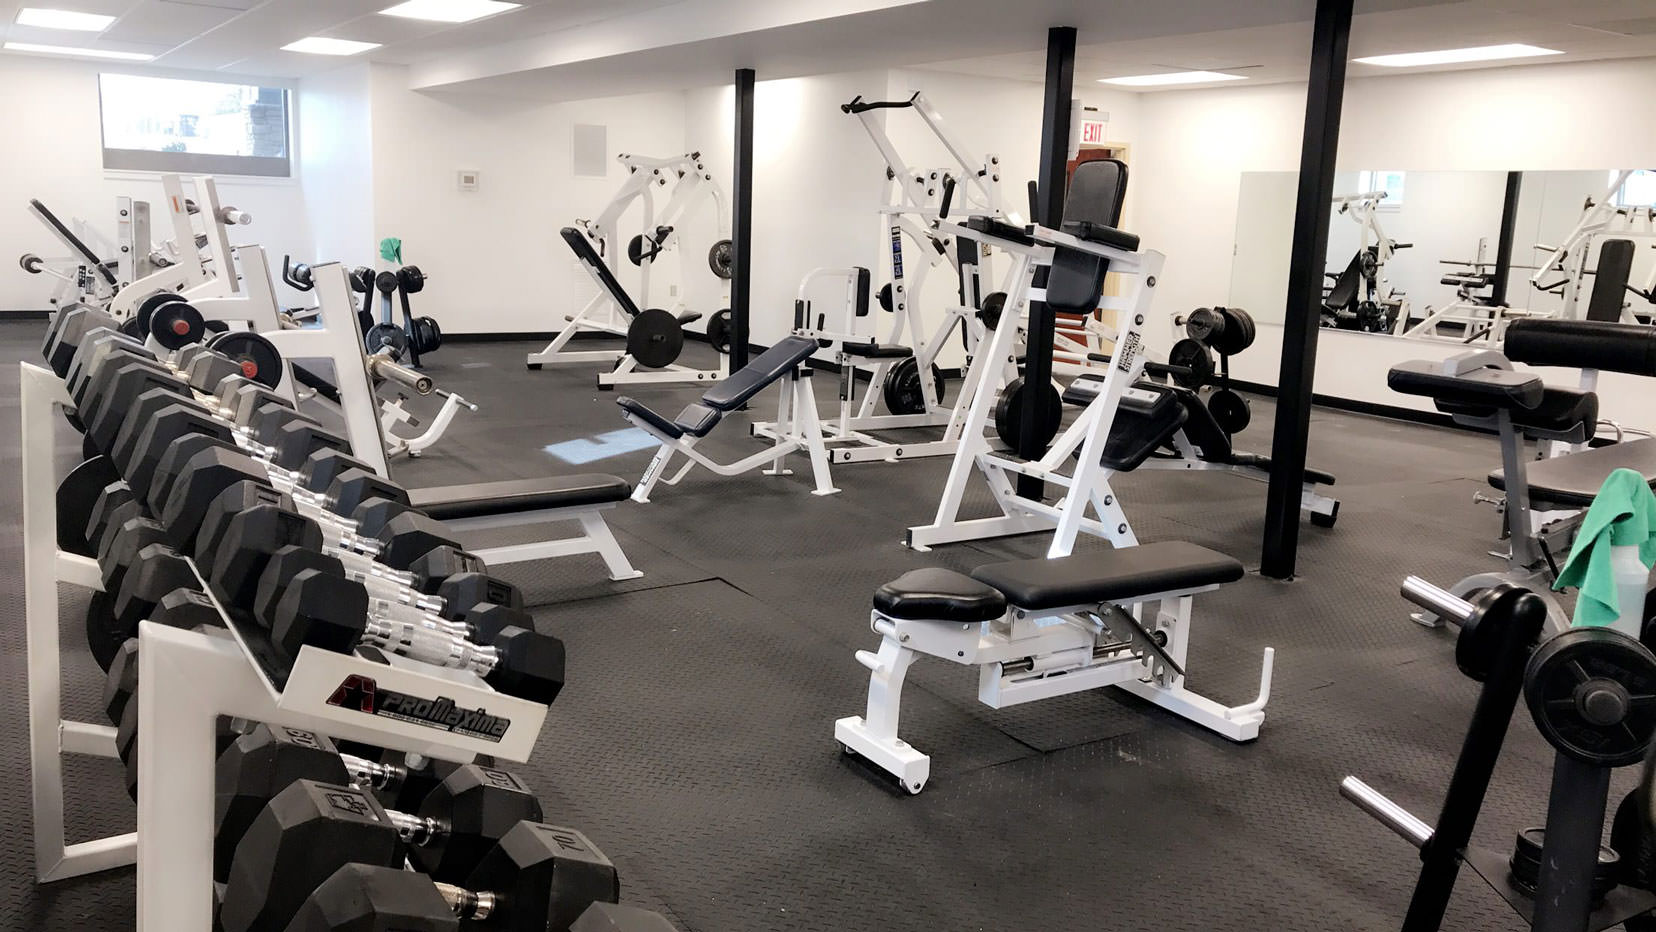 Inwood Fitness Center Image Slideshow